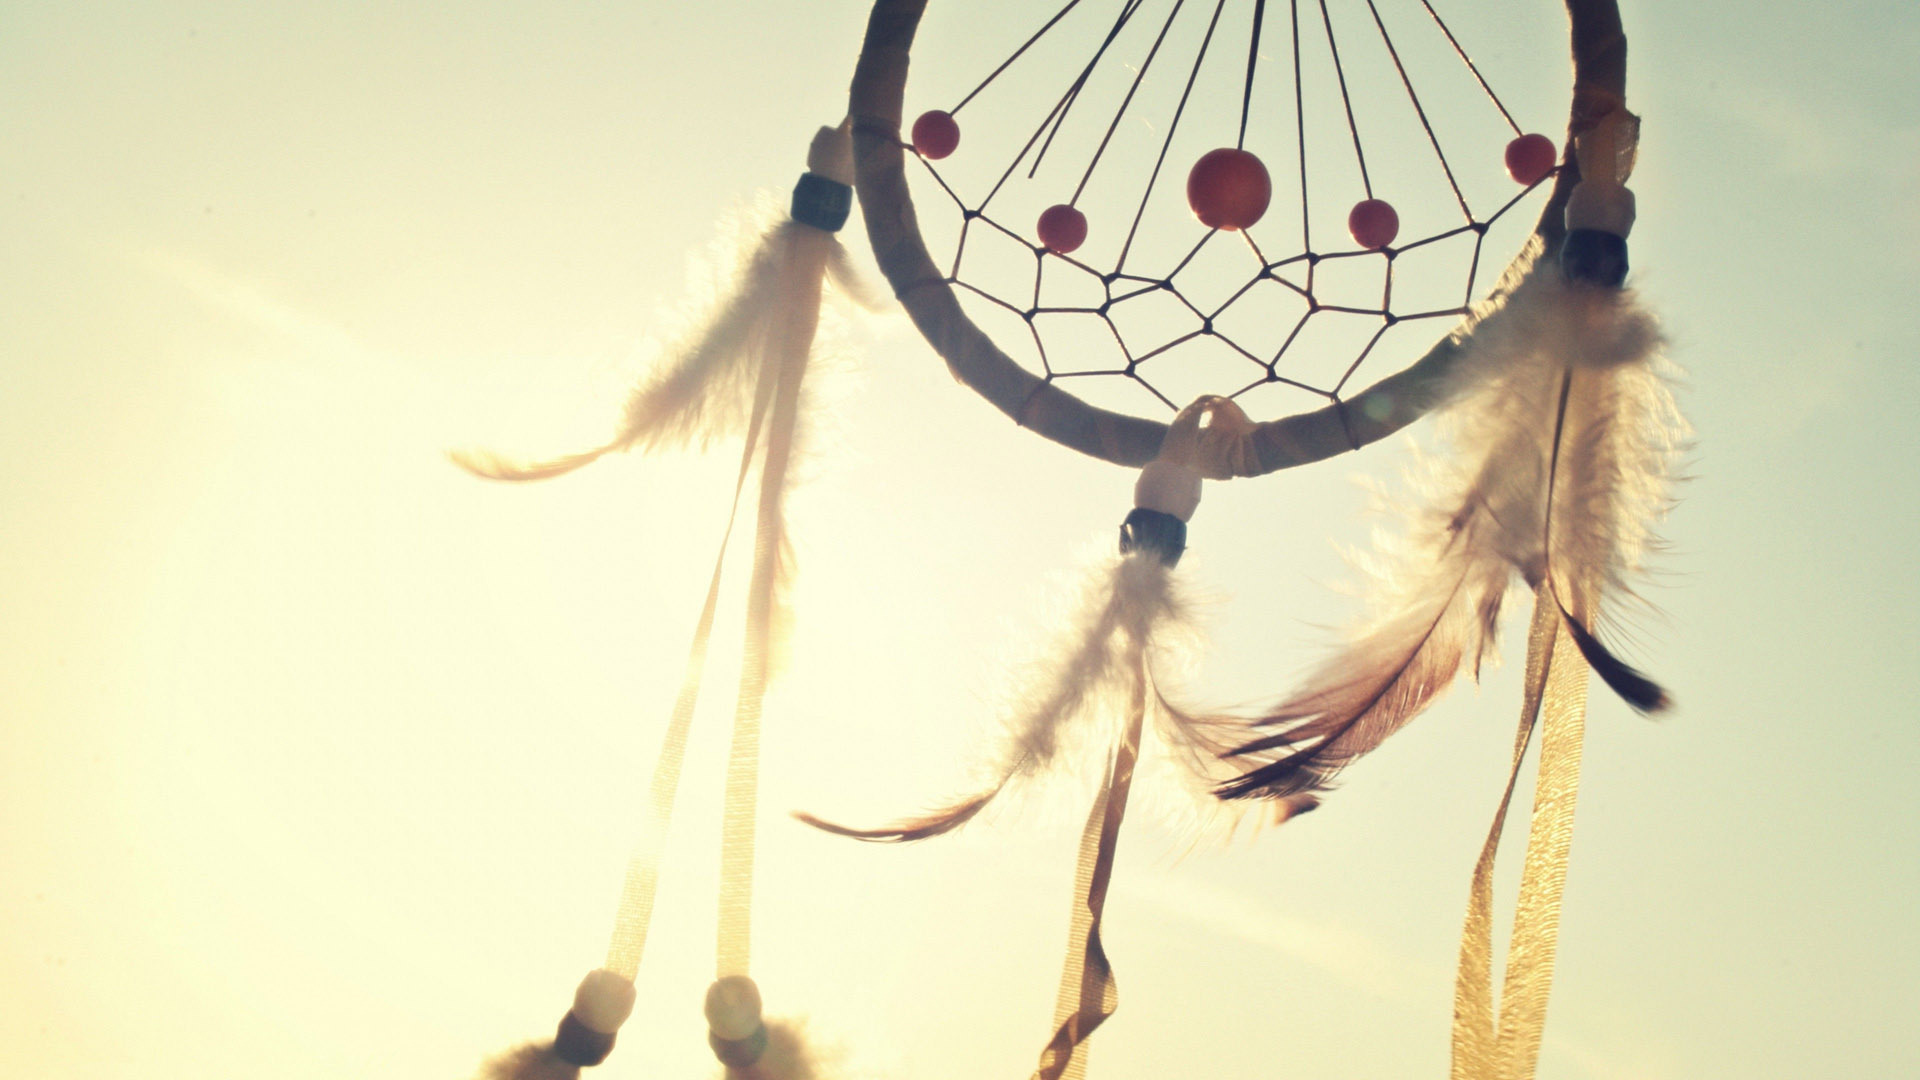 Dream catcher wallpapers best wallpapers free dream catcher wallpaper voltagebd Choice Image